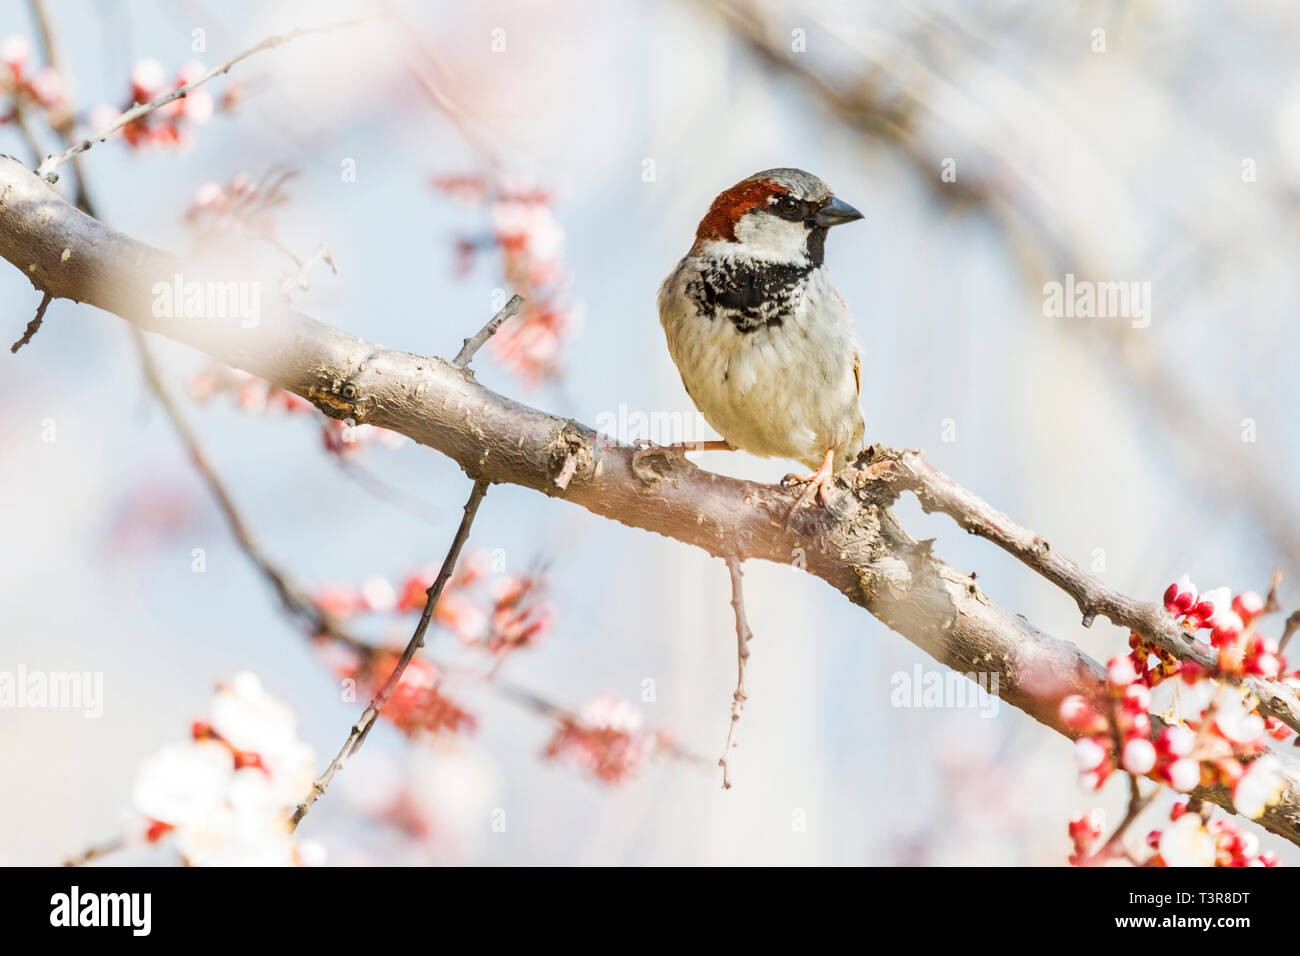 Sparrow Sits On A Beautiful Branch Among The Blossoming Apricot Stock Photo Alamy